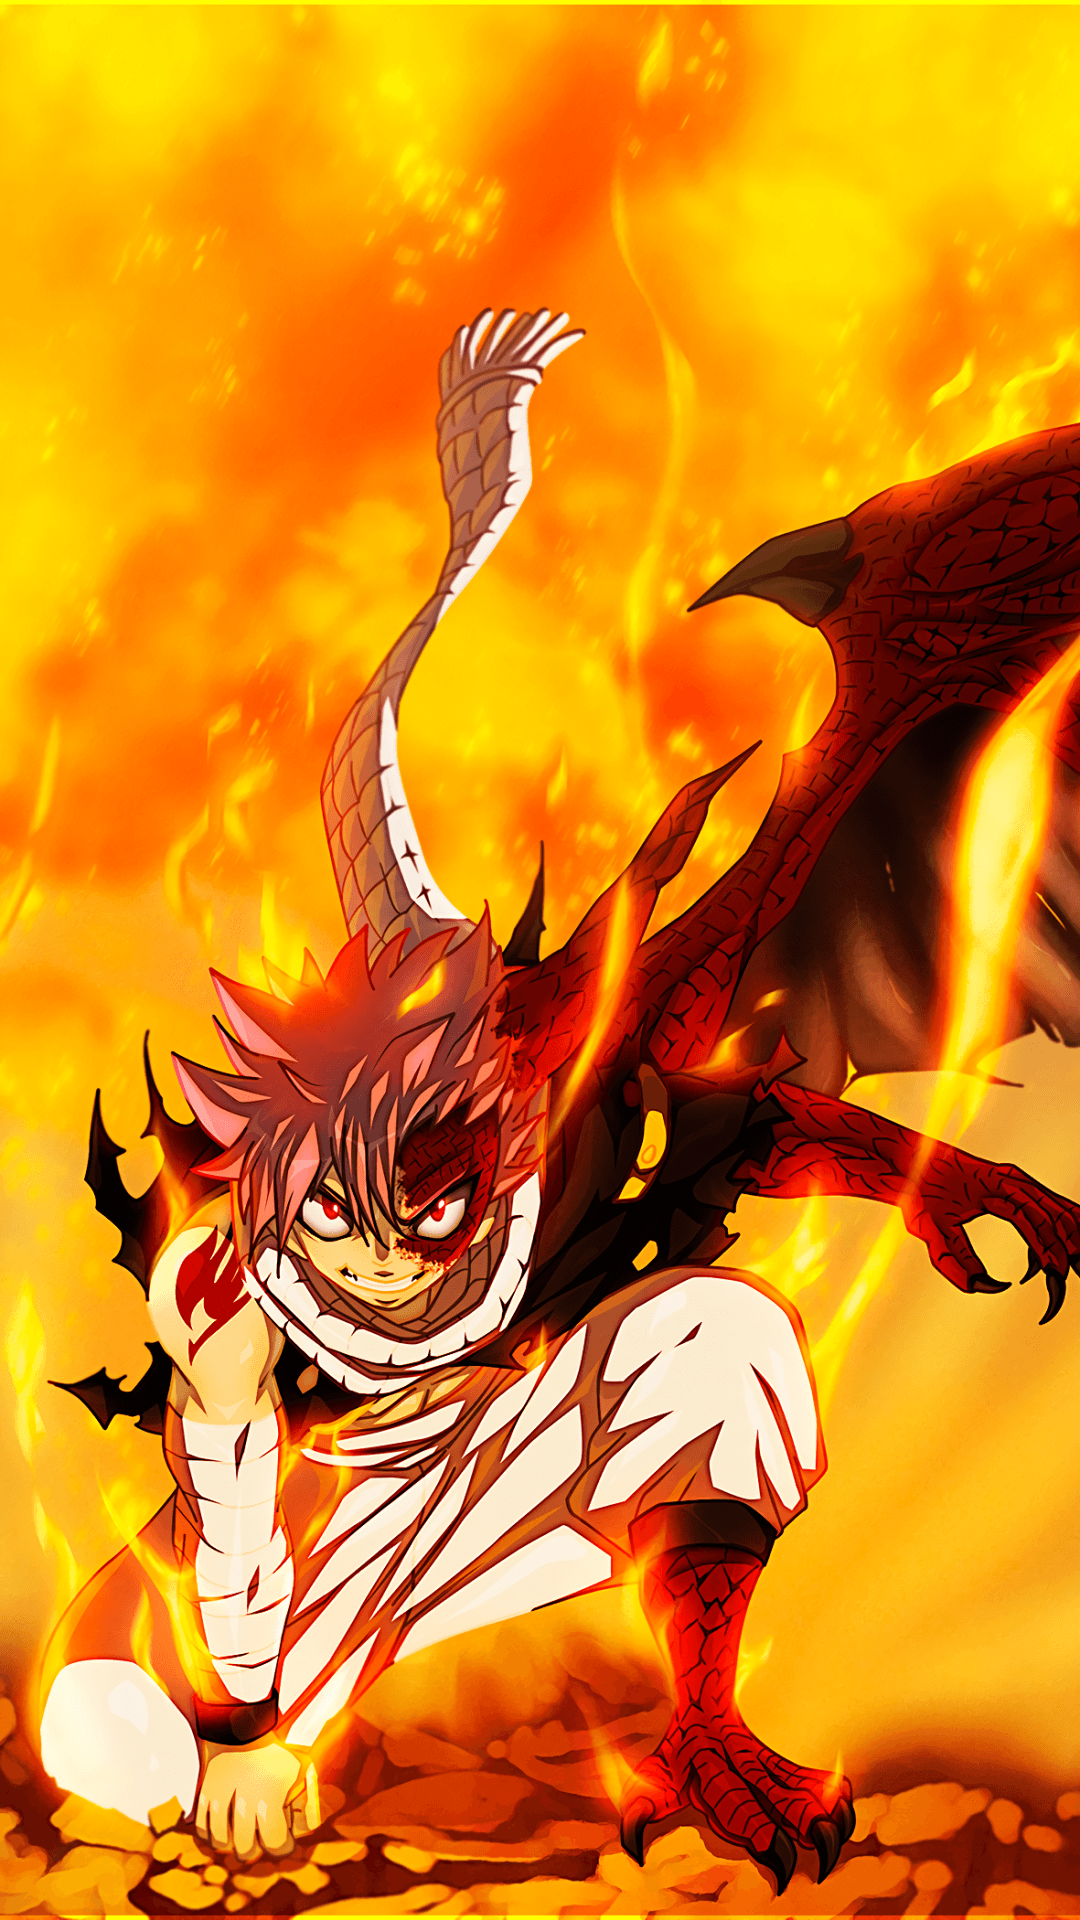 8 Fairy Tail Iphone Wallpapers Top Free 8 Fairy Tail